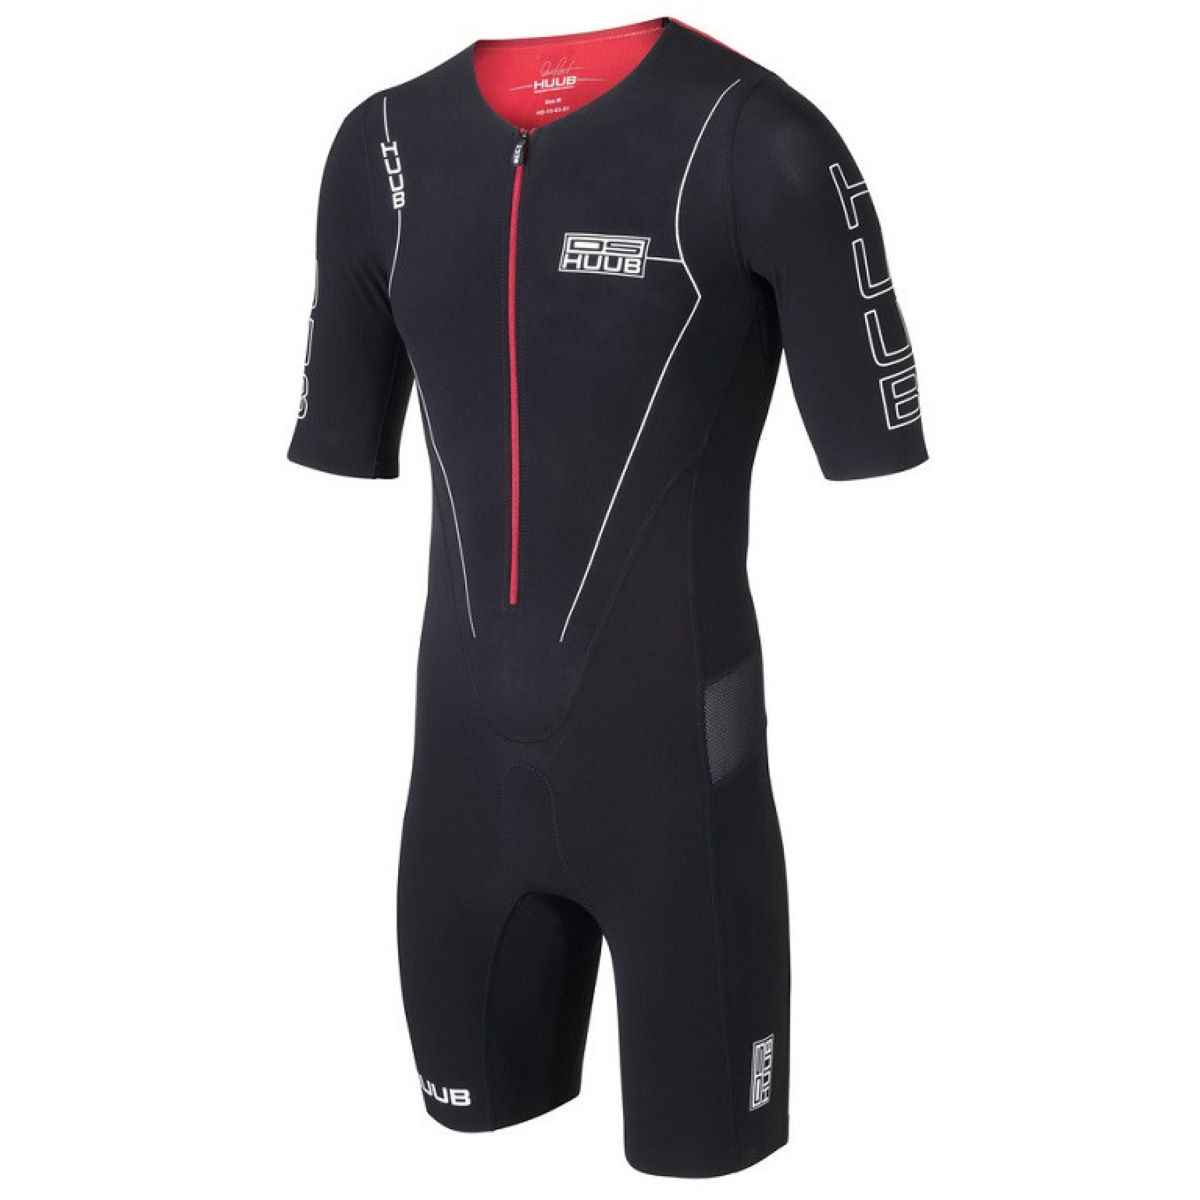 HUUB DS Long Course Triathlon Suit (Black) - Large Black | Tri Suits